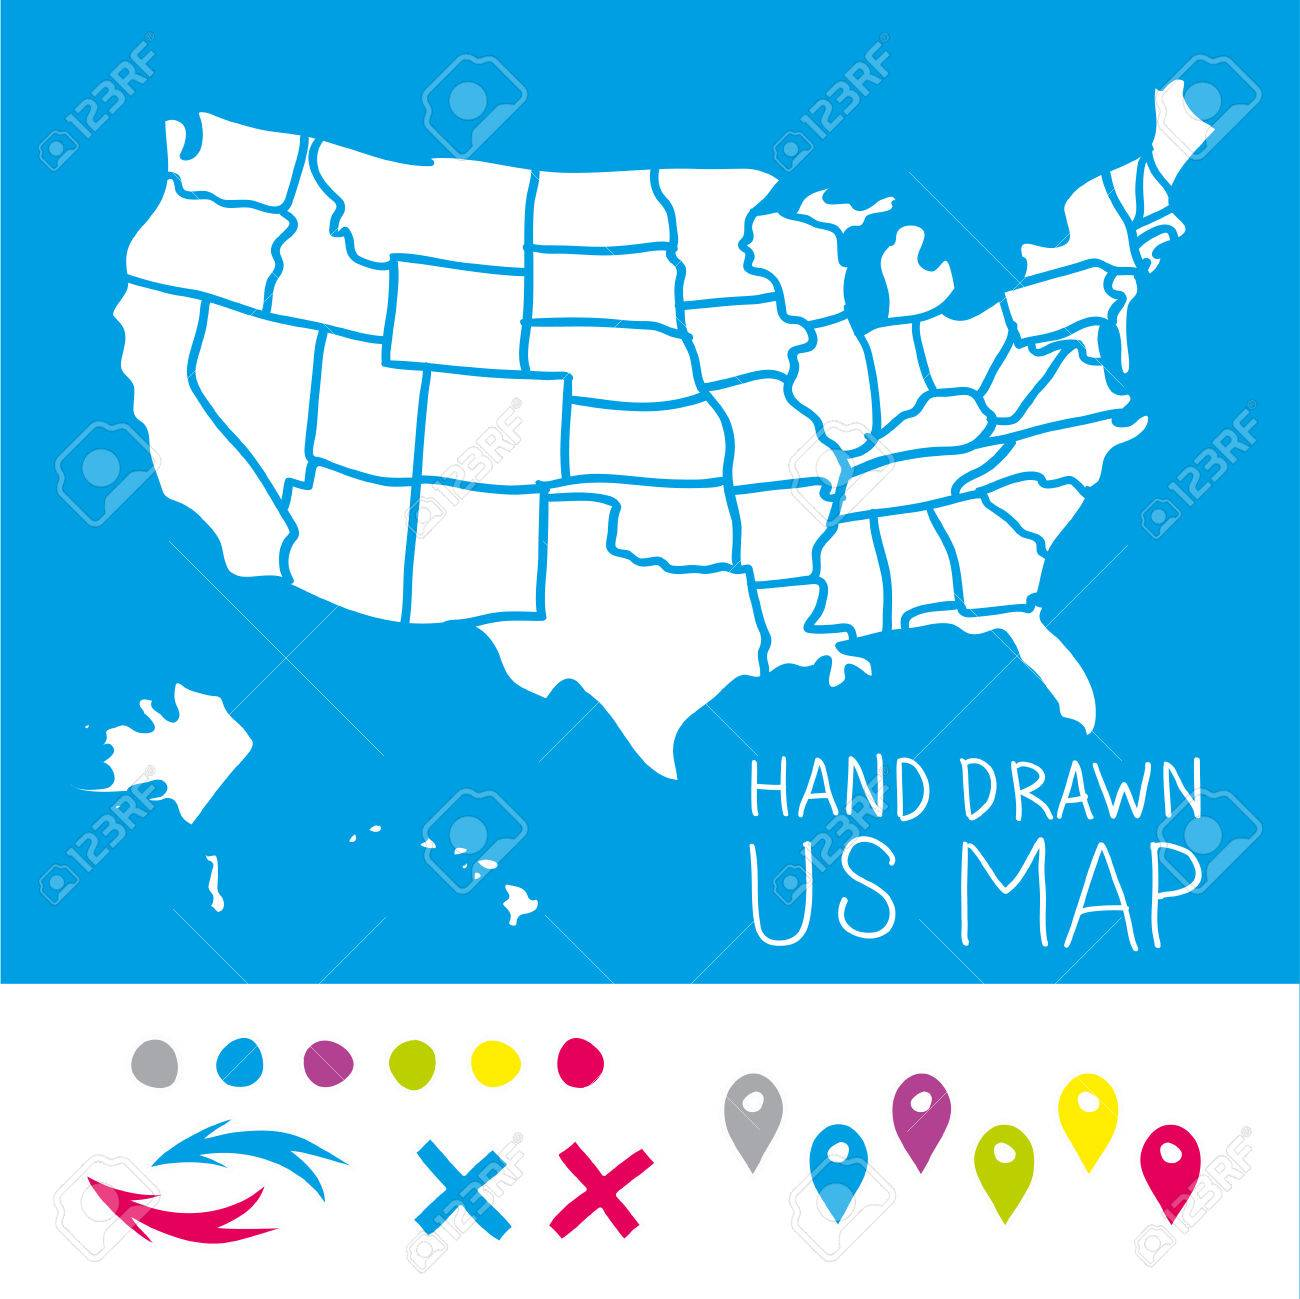 Hand Drawn US Map Whith Map Pins Vector Illustration Royalty Free - Hand drawn us map vector